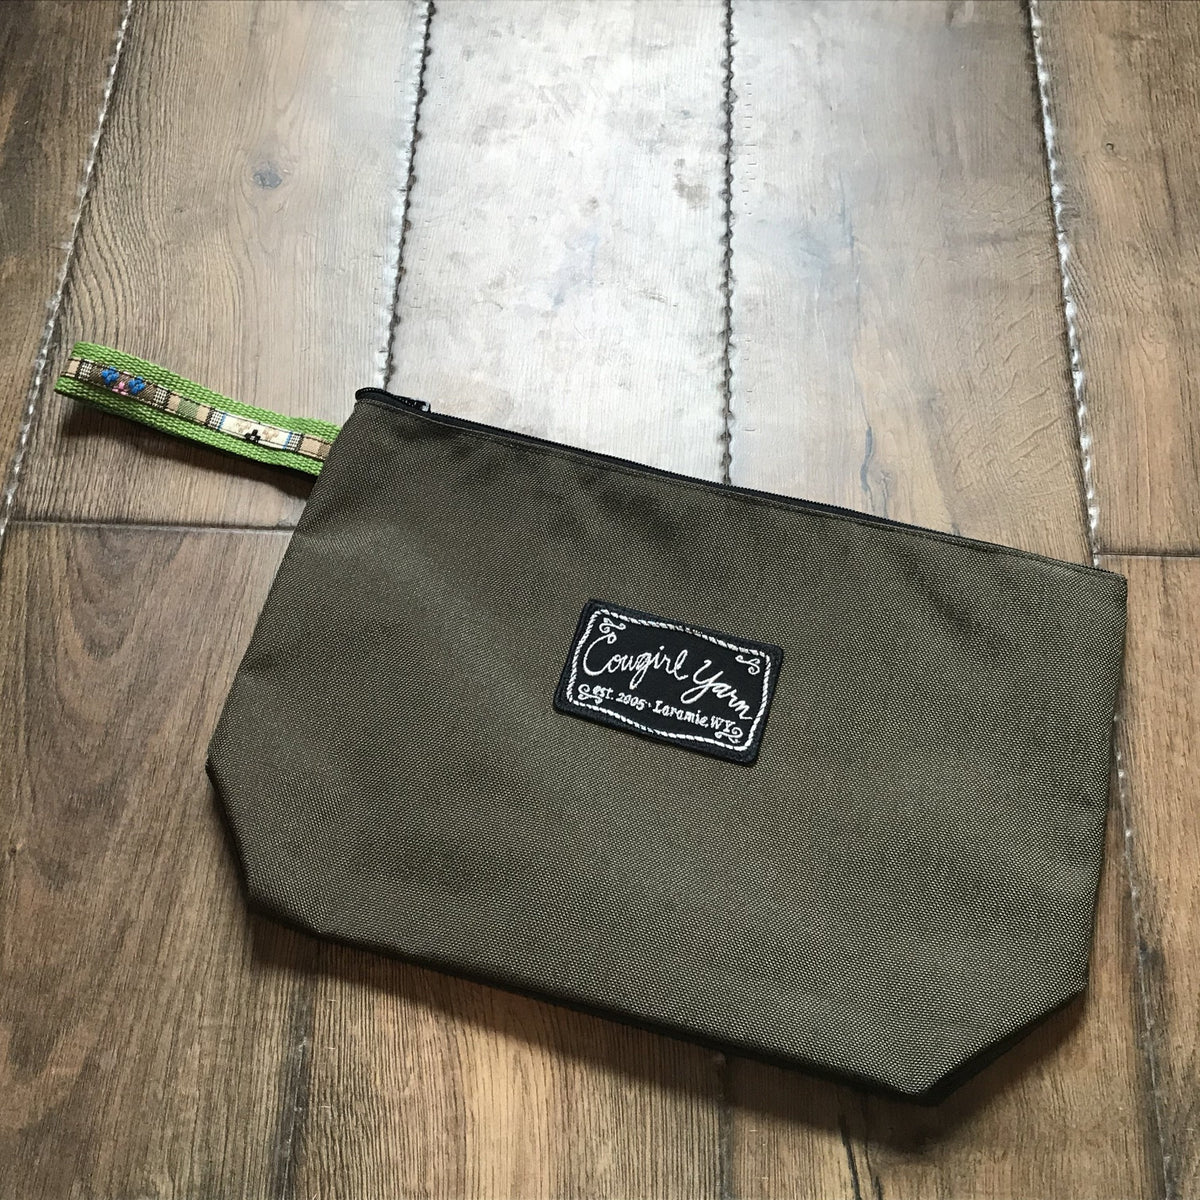 An olive green, zippered pouch featuring the Cowgirl Yarn logo